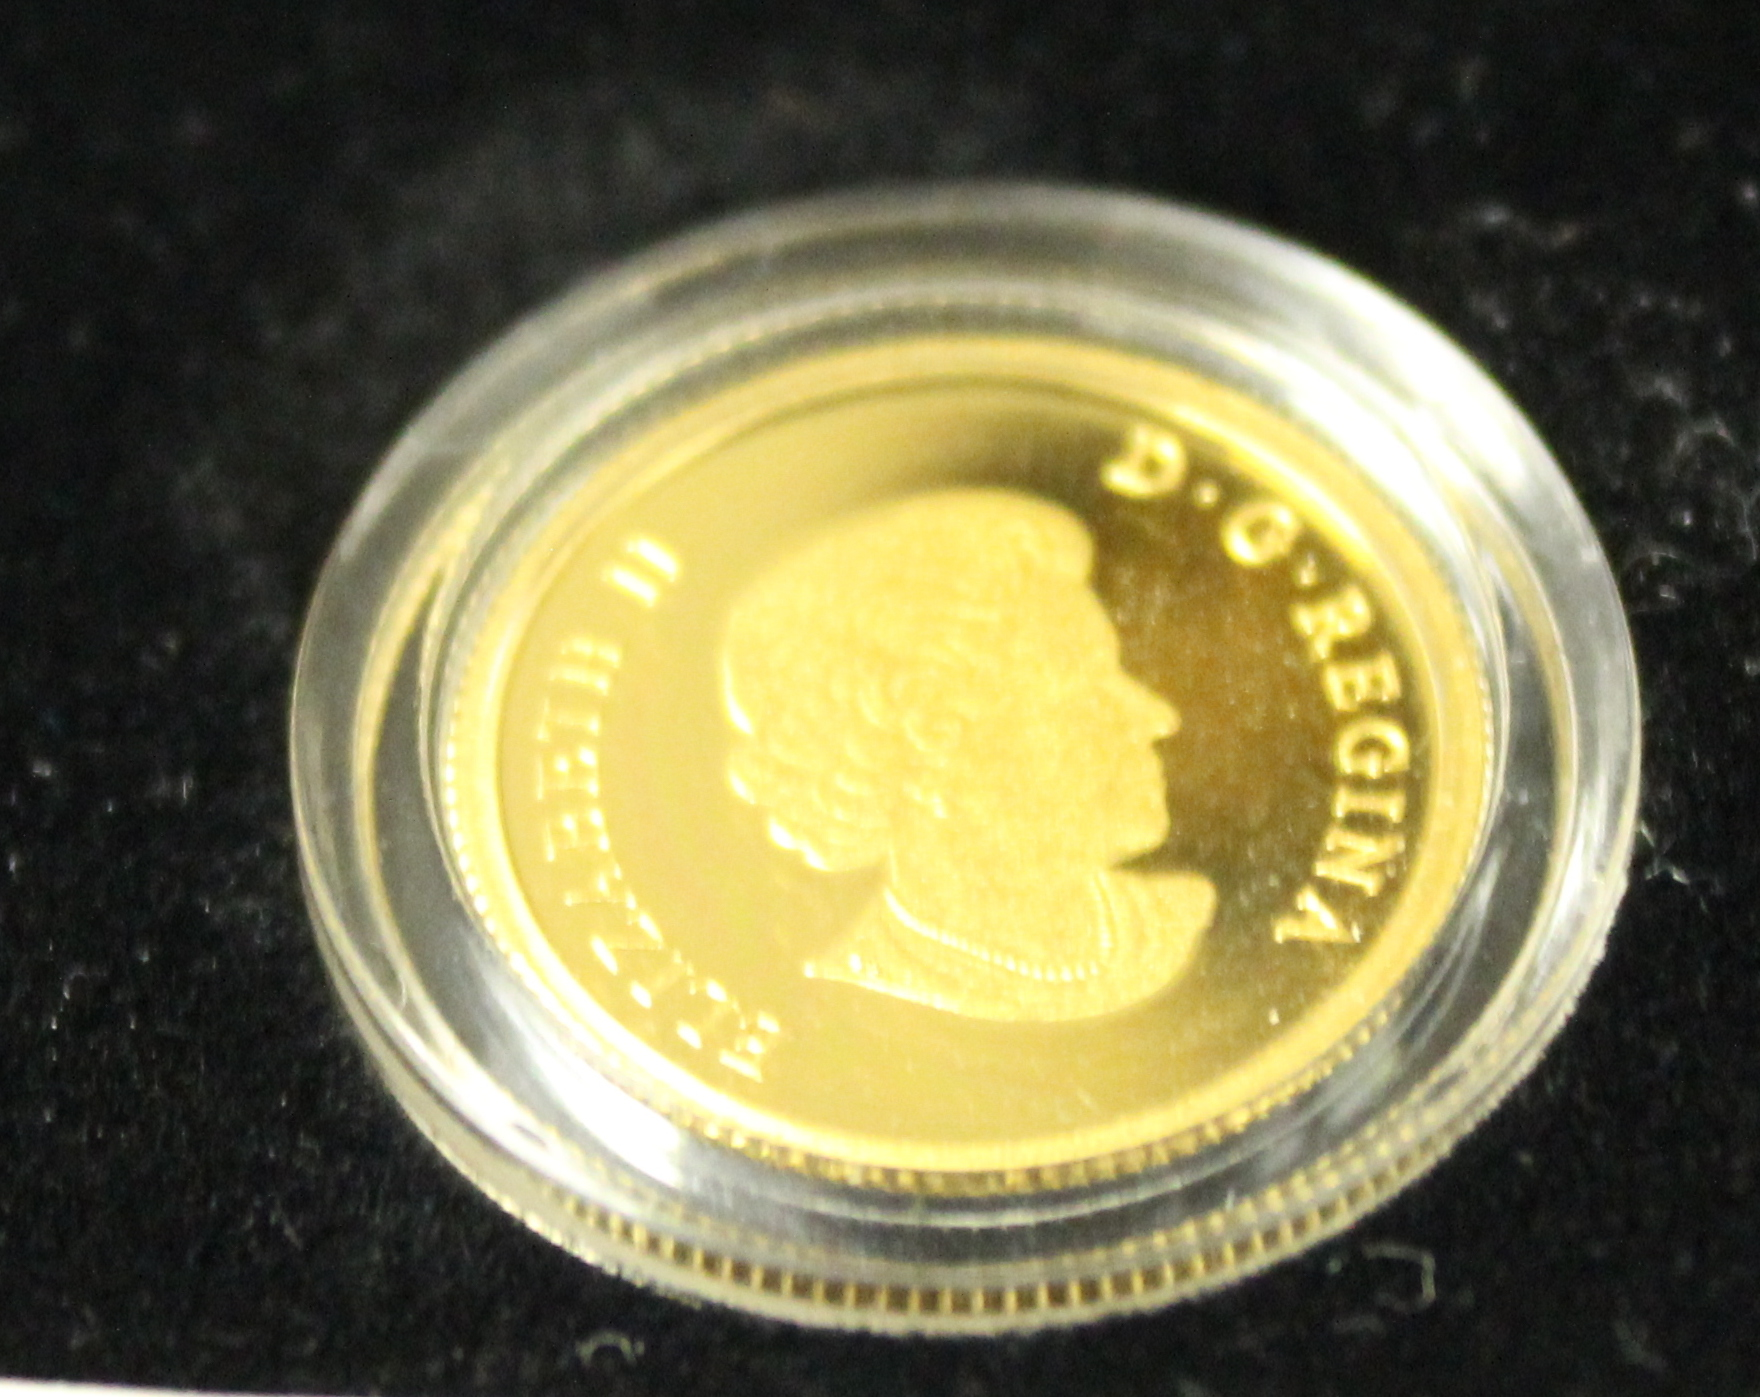 Royal Canadian mint 1/10 oz .999 gold coin